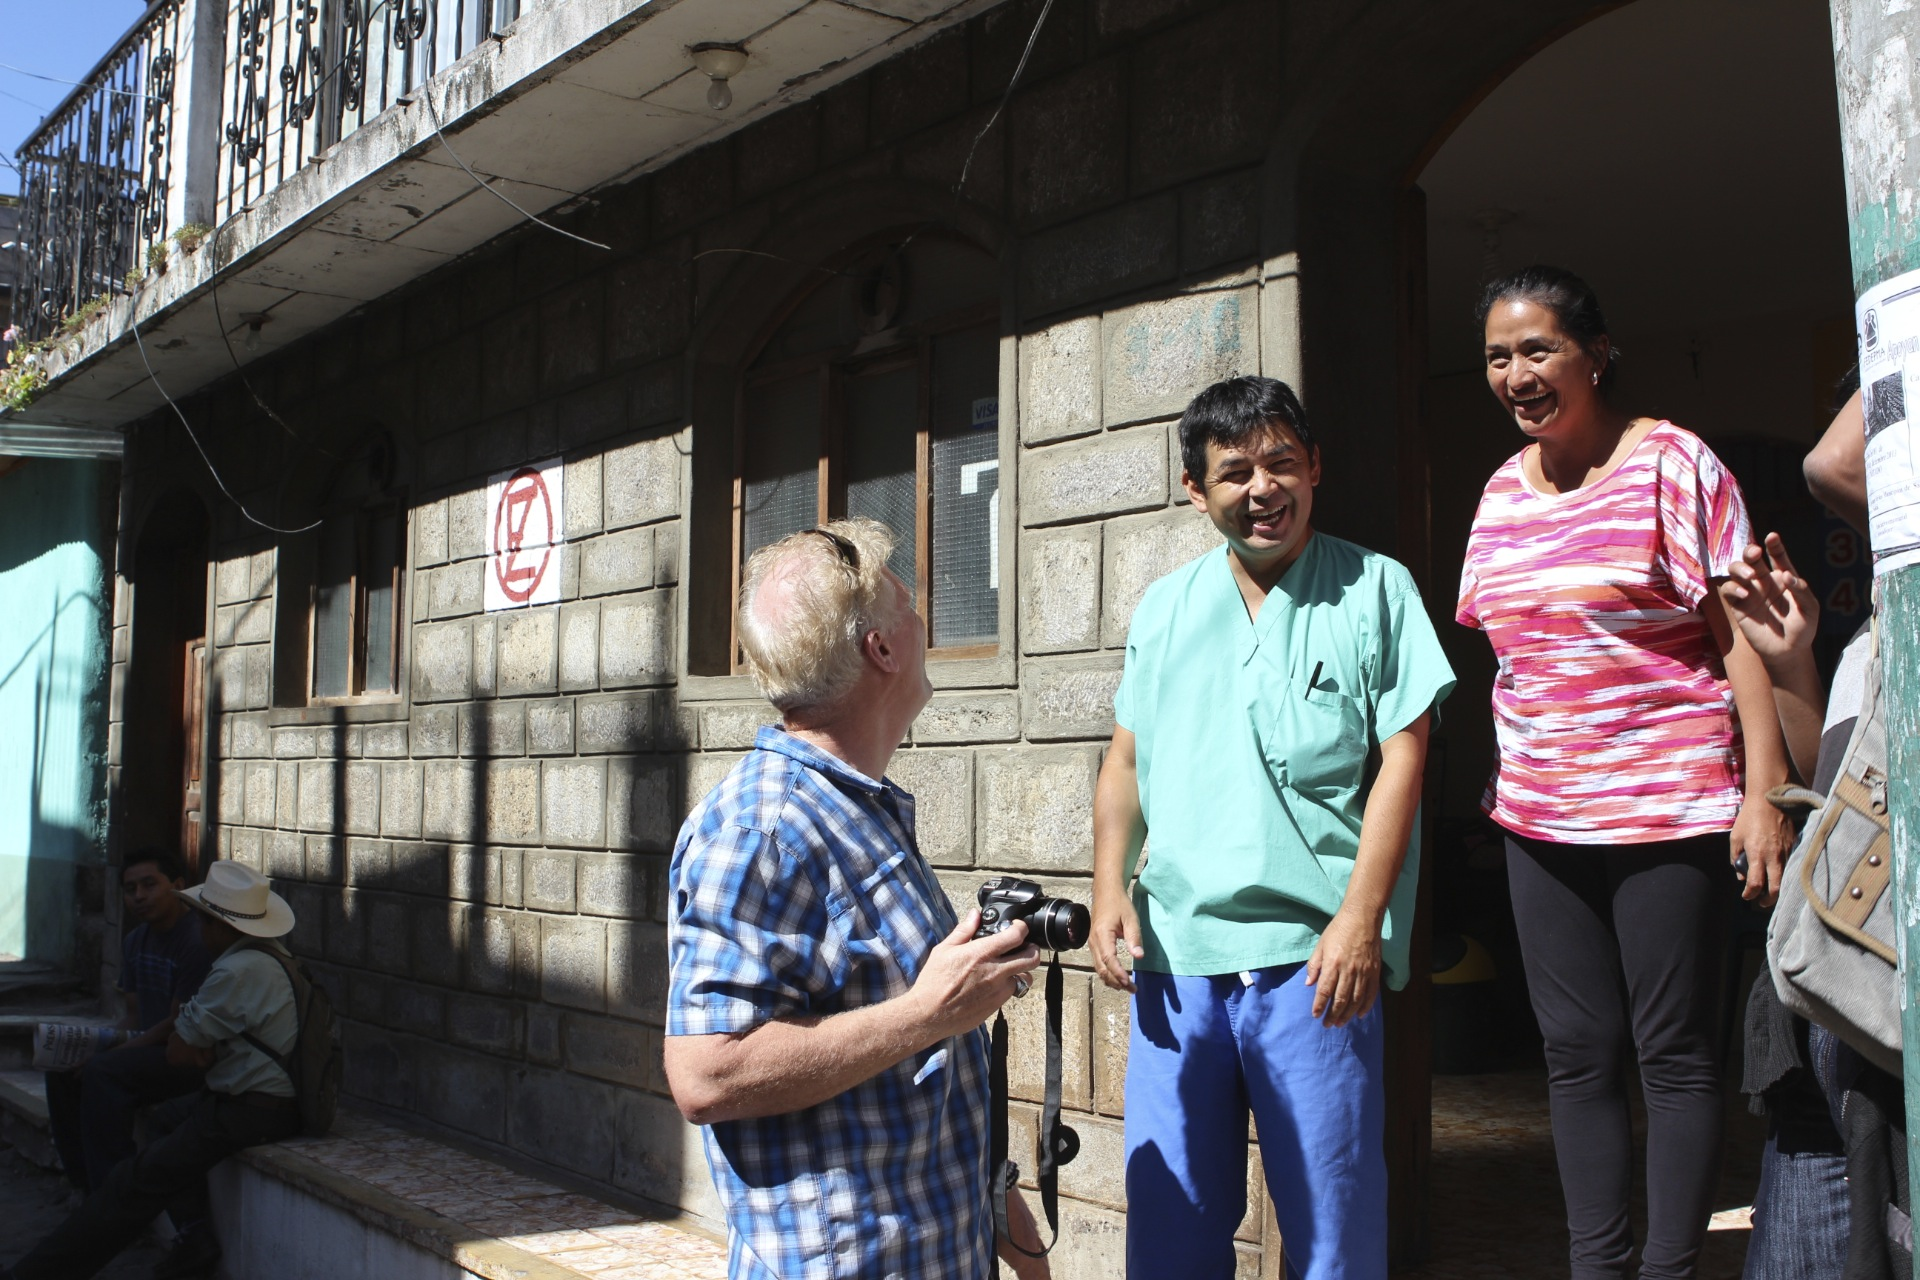 Tim with Francisco and Carina, in the front door of Francisco's childhood home, which has now become his current medical clinic.